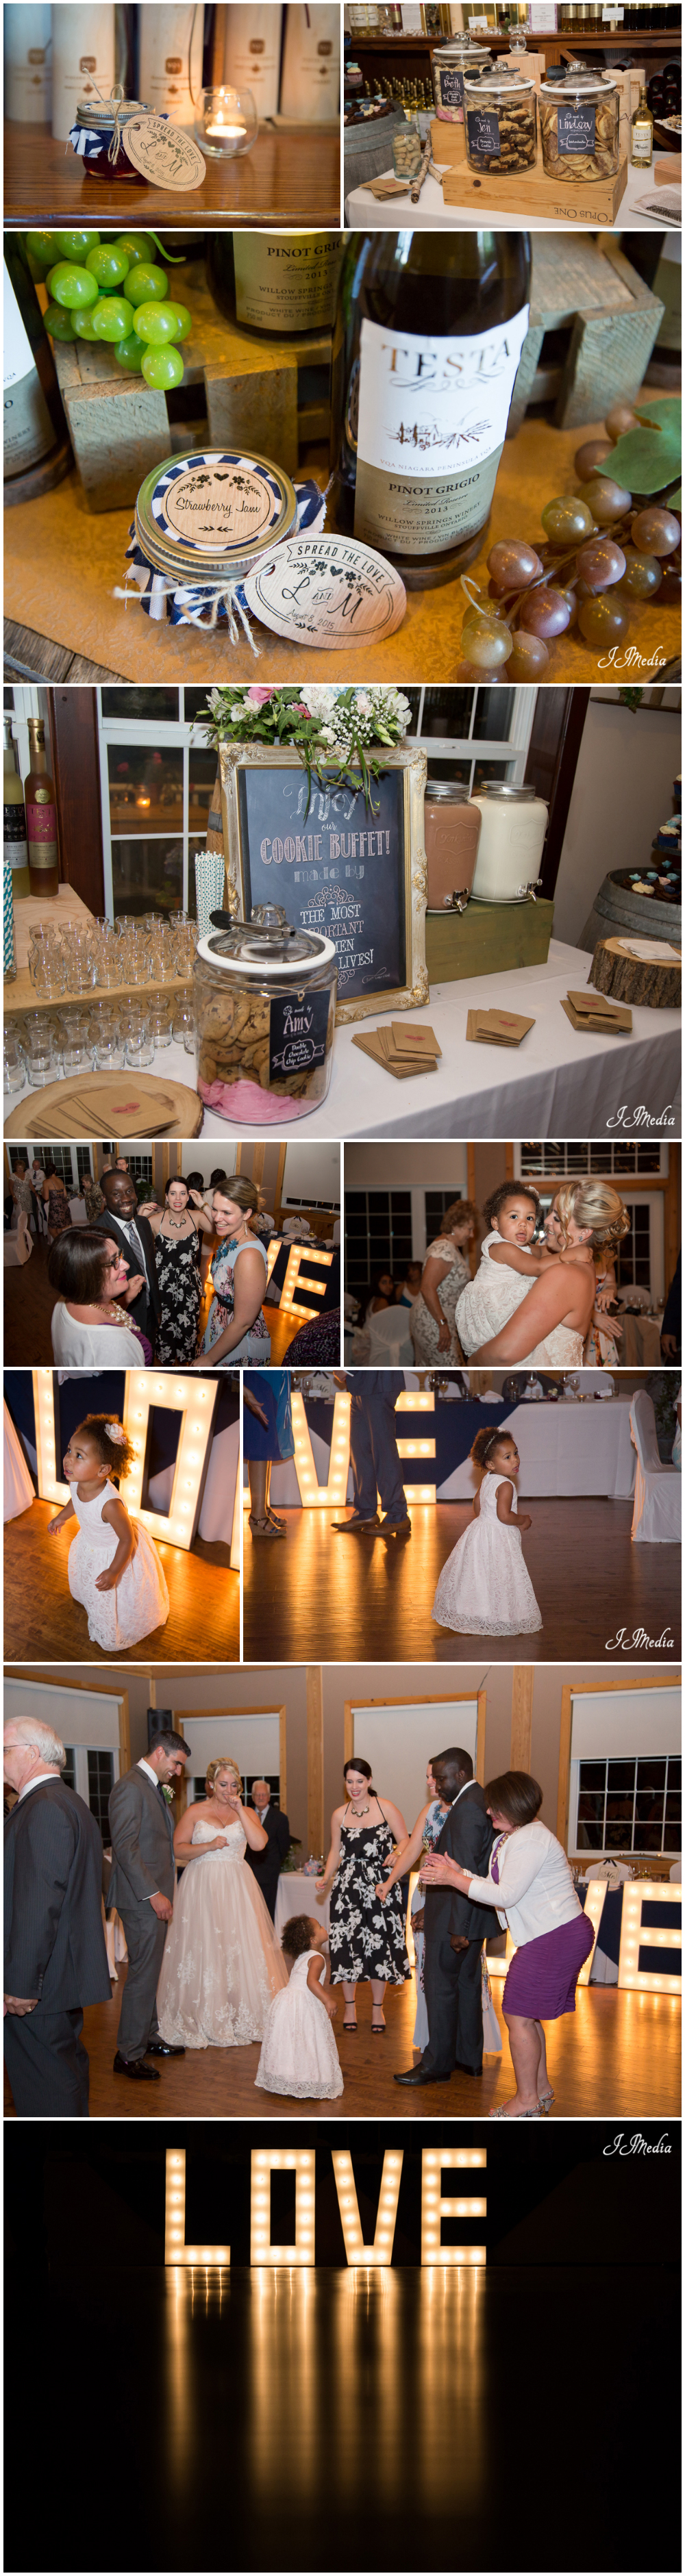 Willow_Springs_Winery_Wedding_JJMedia-11